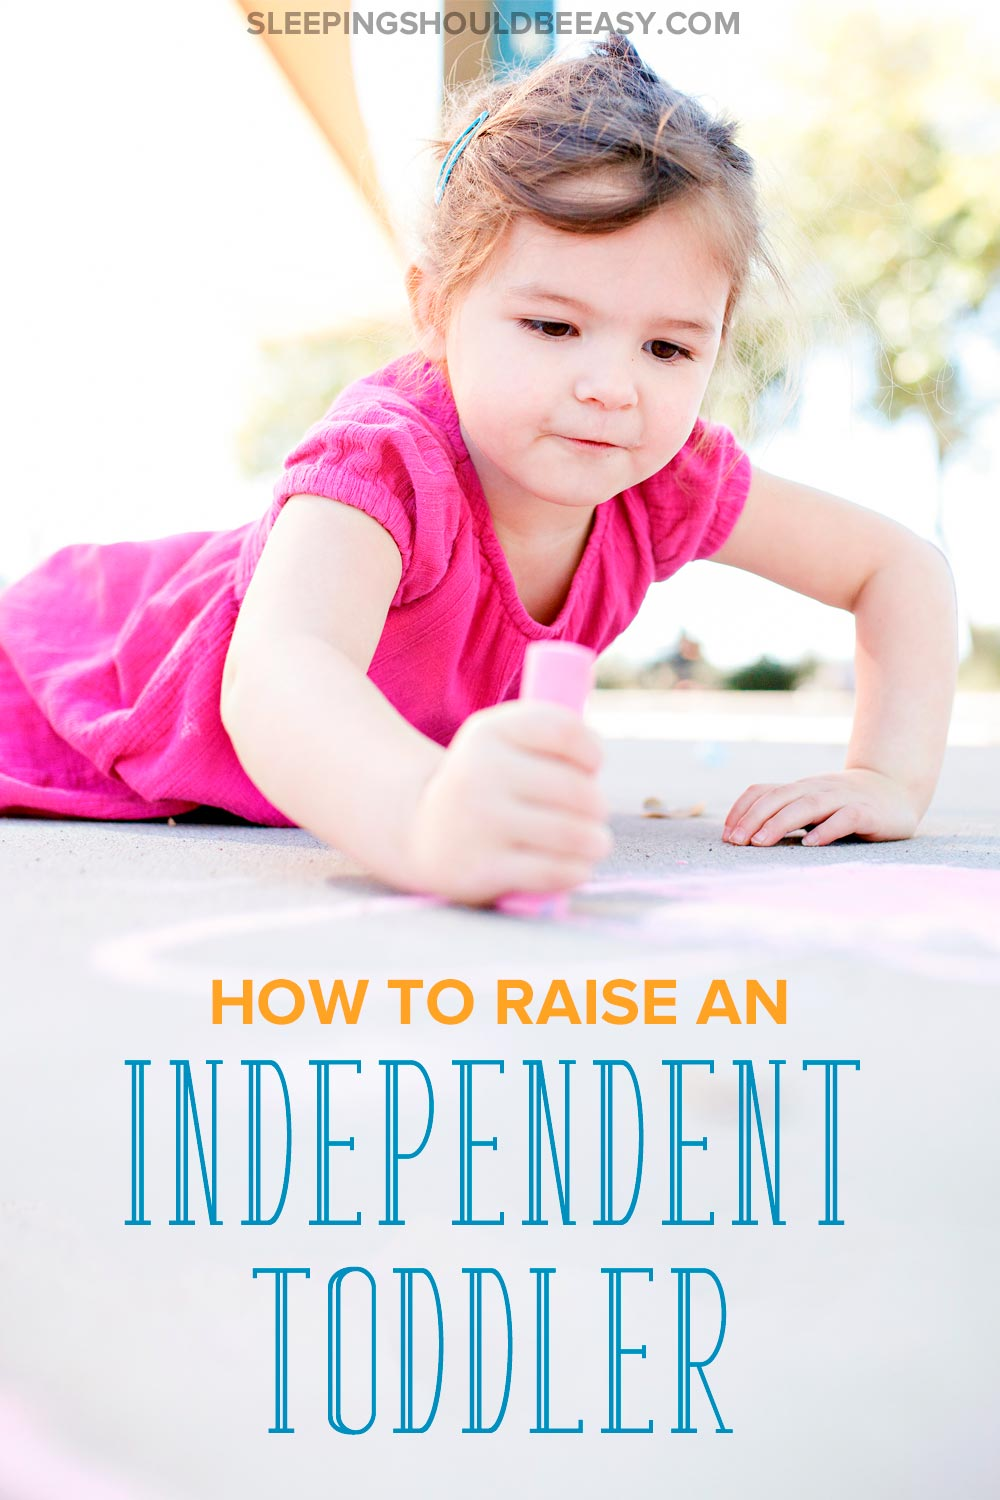 How to raise an independent toddler